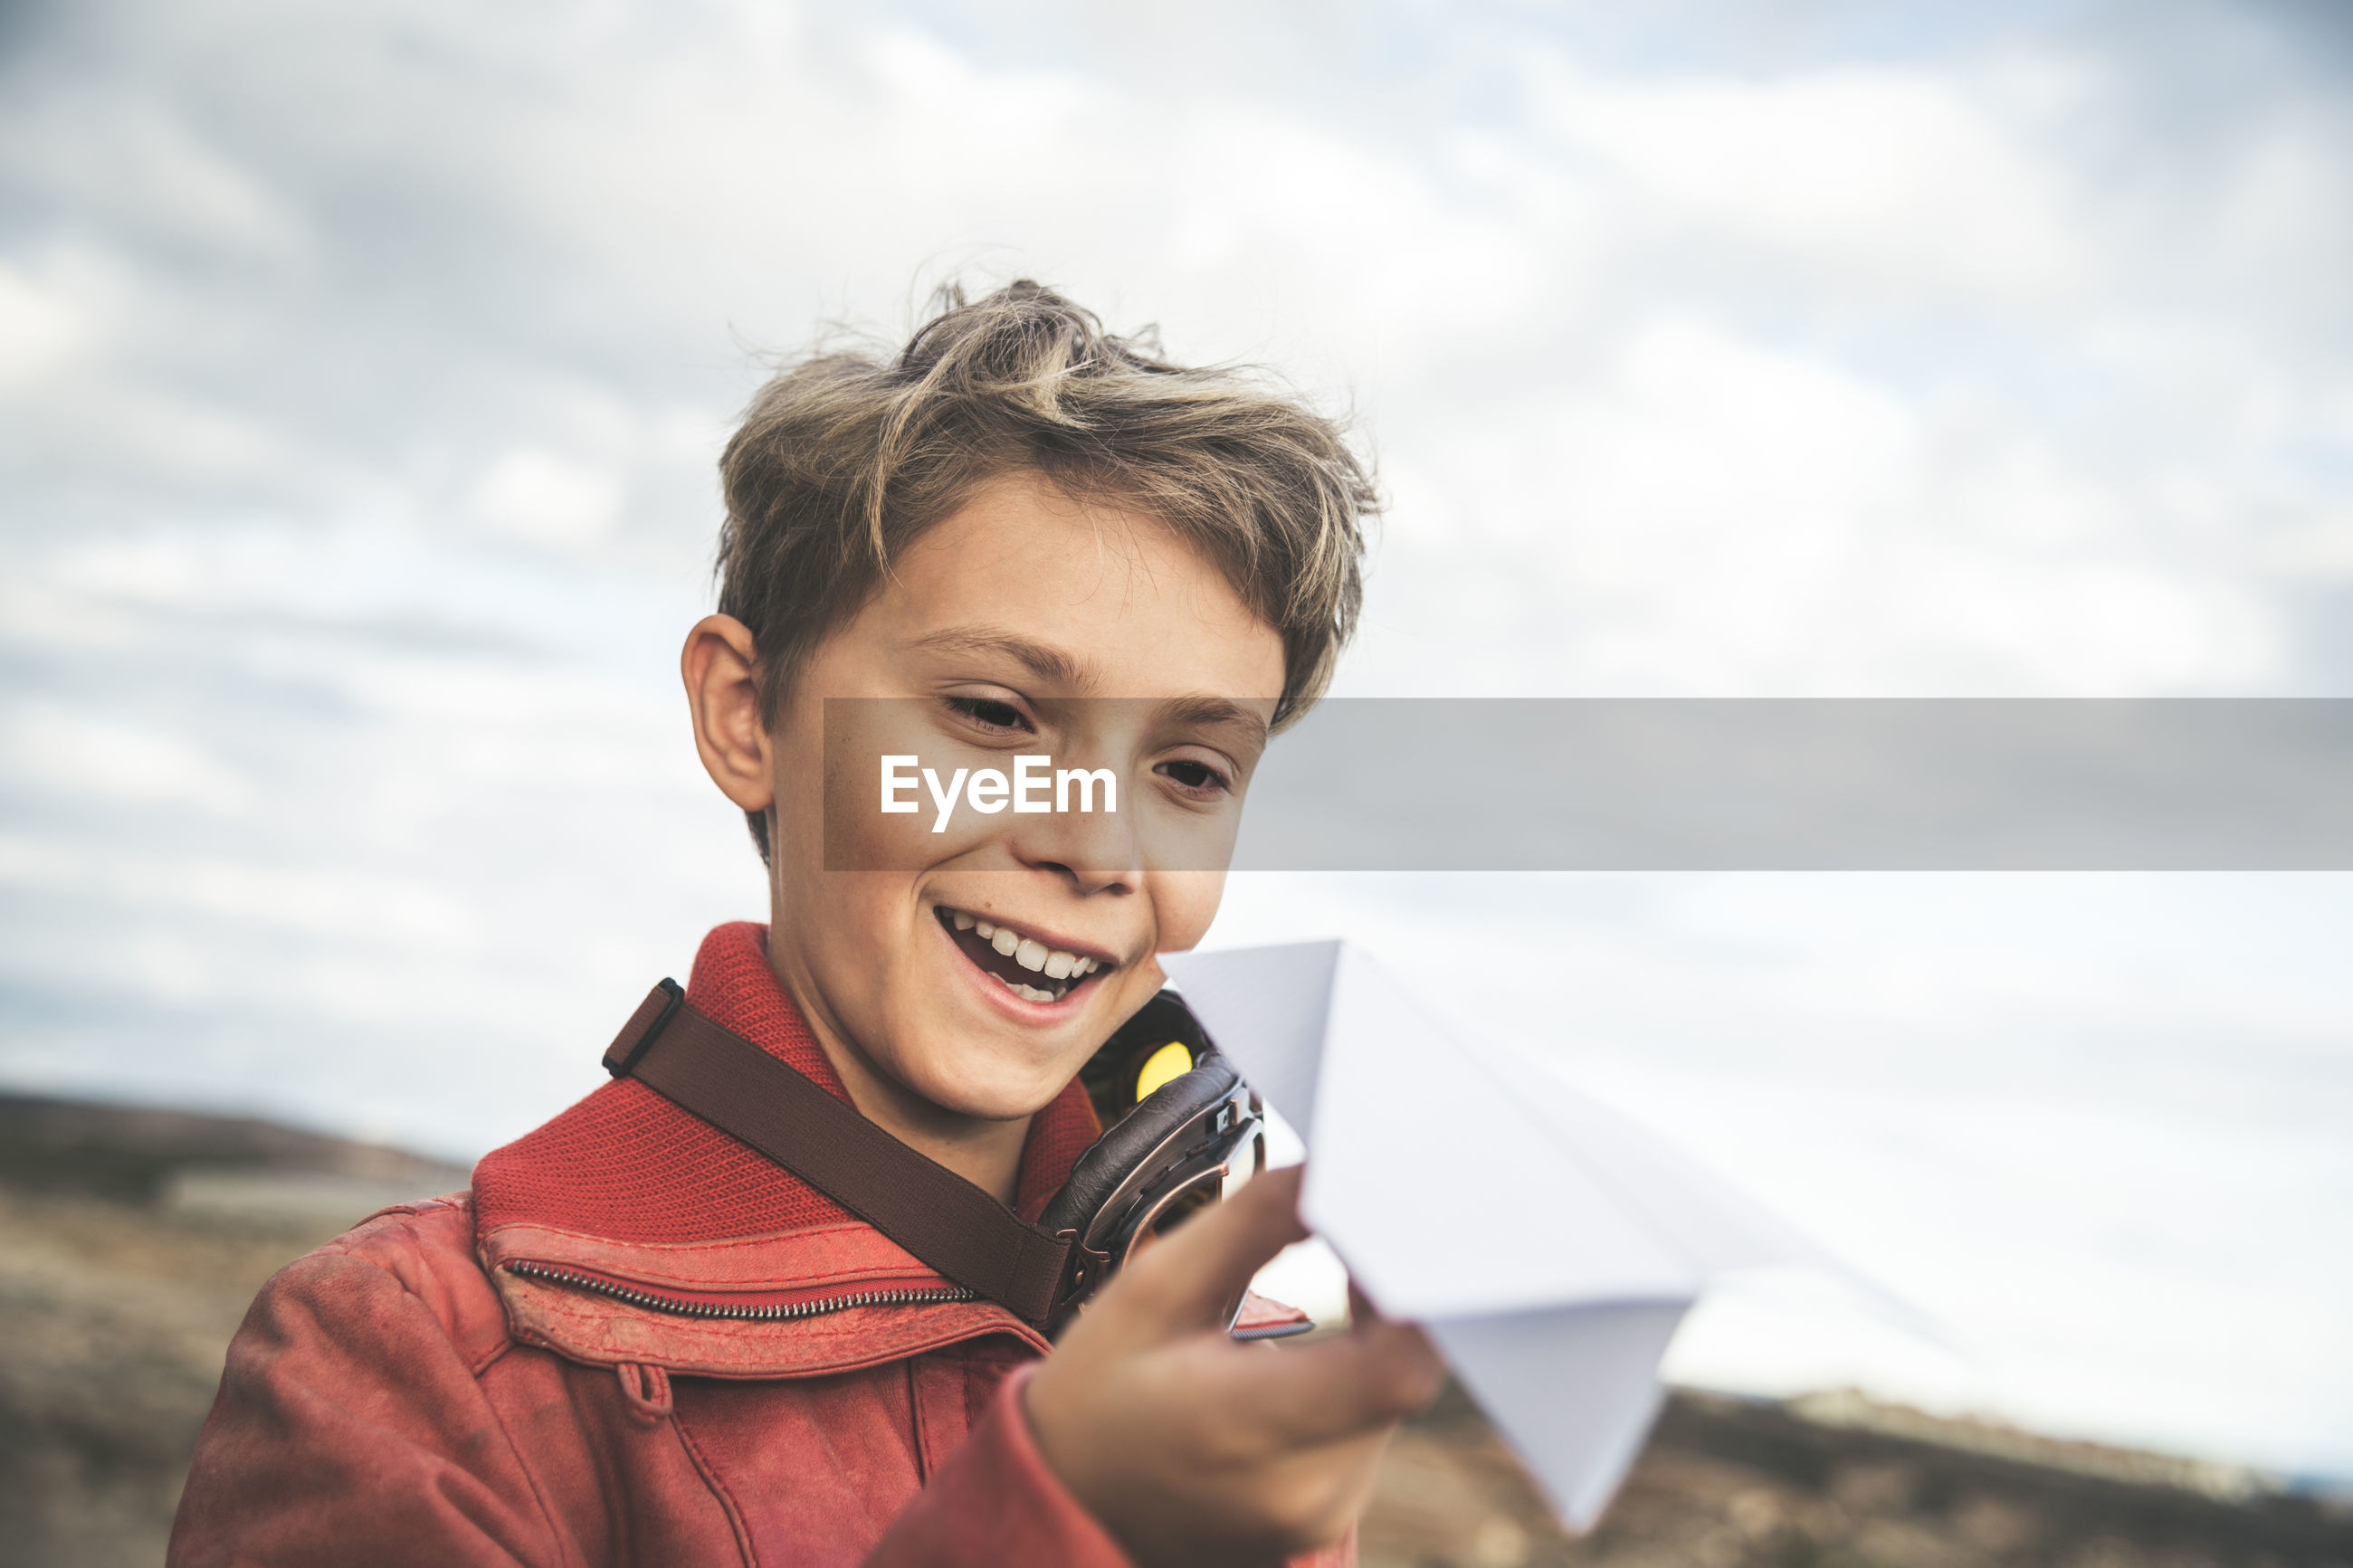 Smiling boy holding paper airplane while standing against cloudy sky